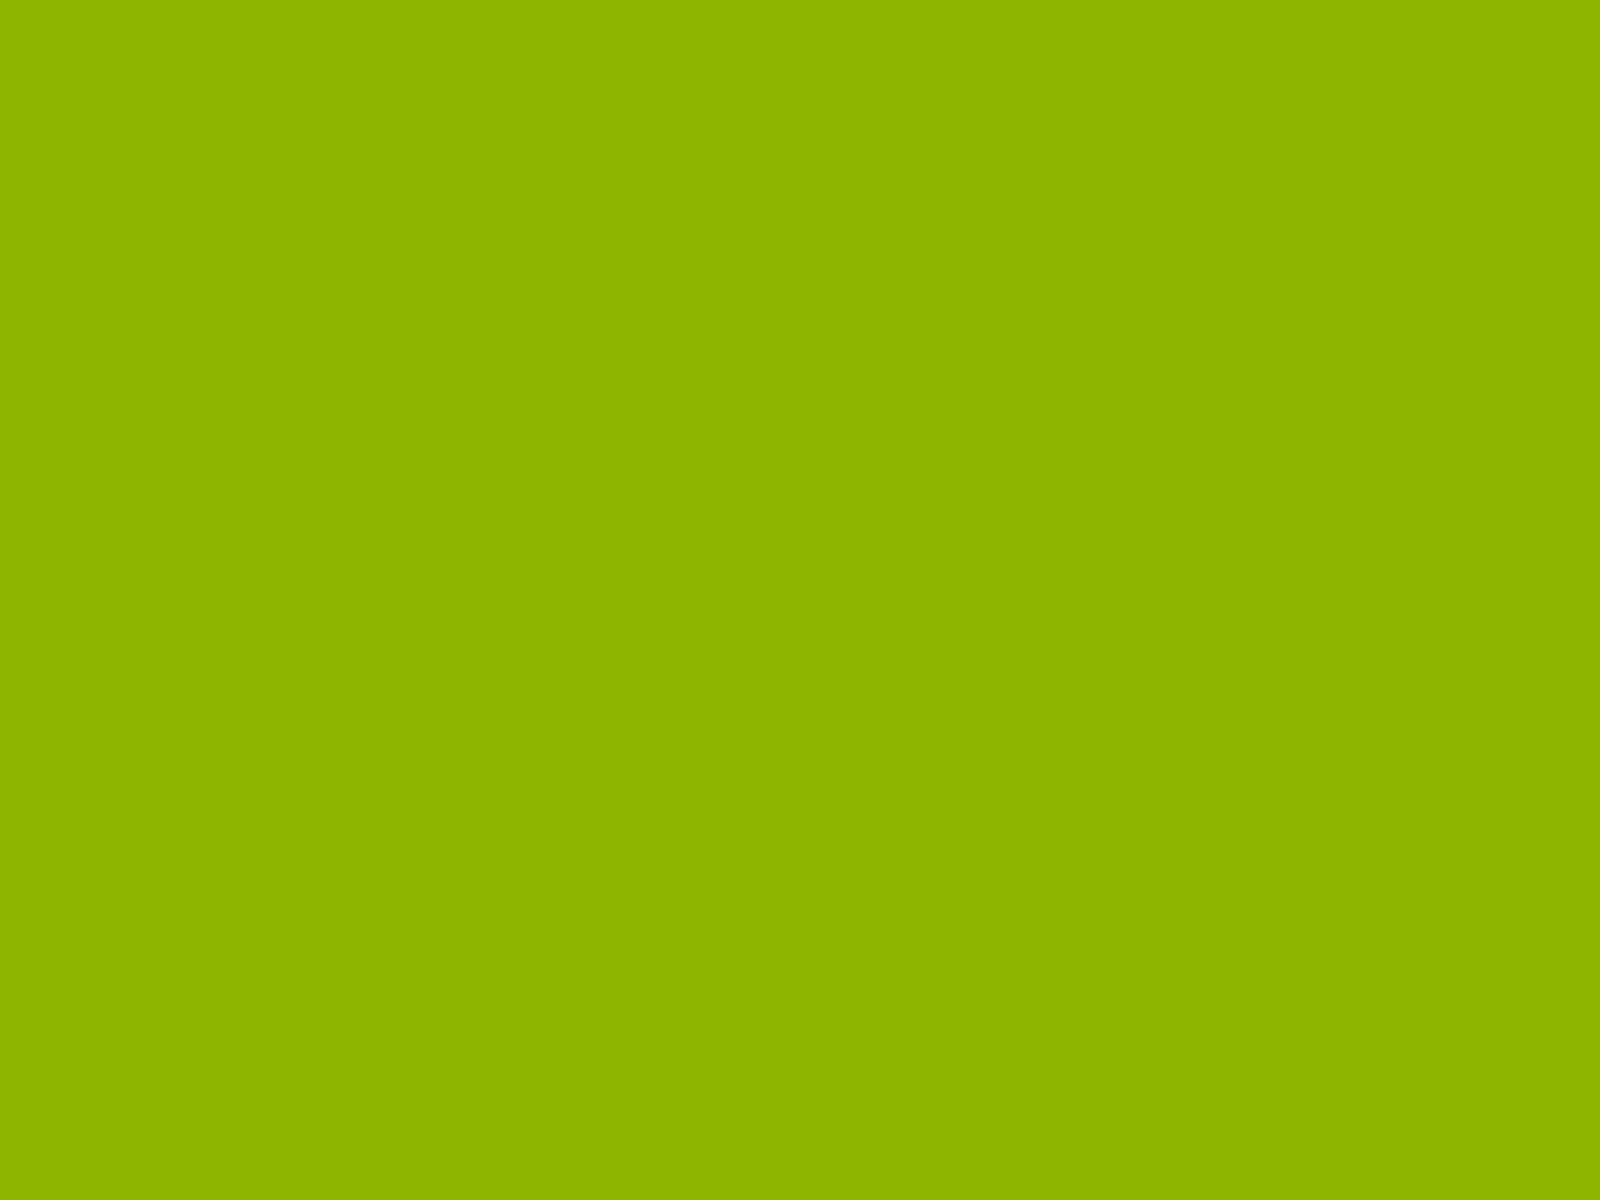 1600x1200 Apple Green Solid Color Background